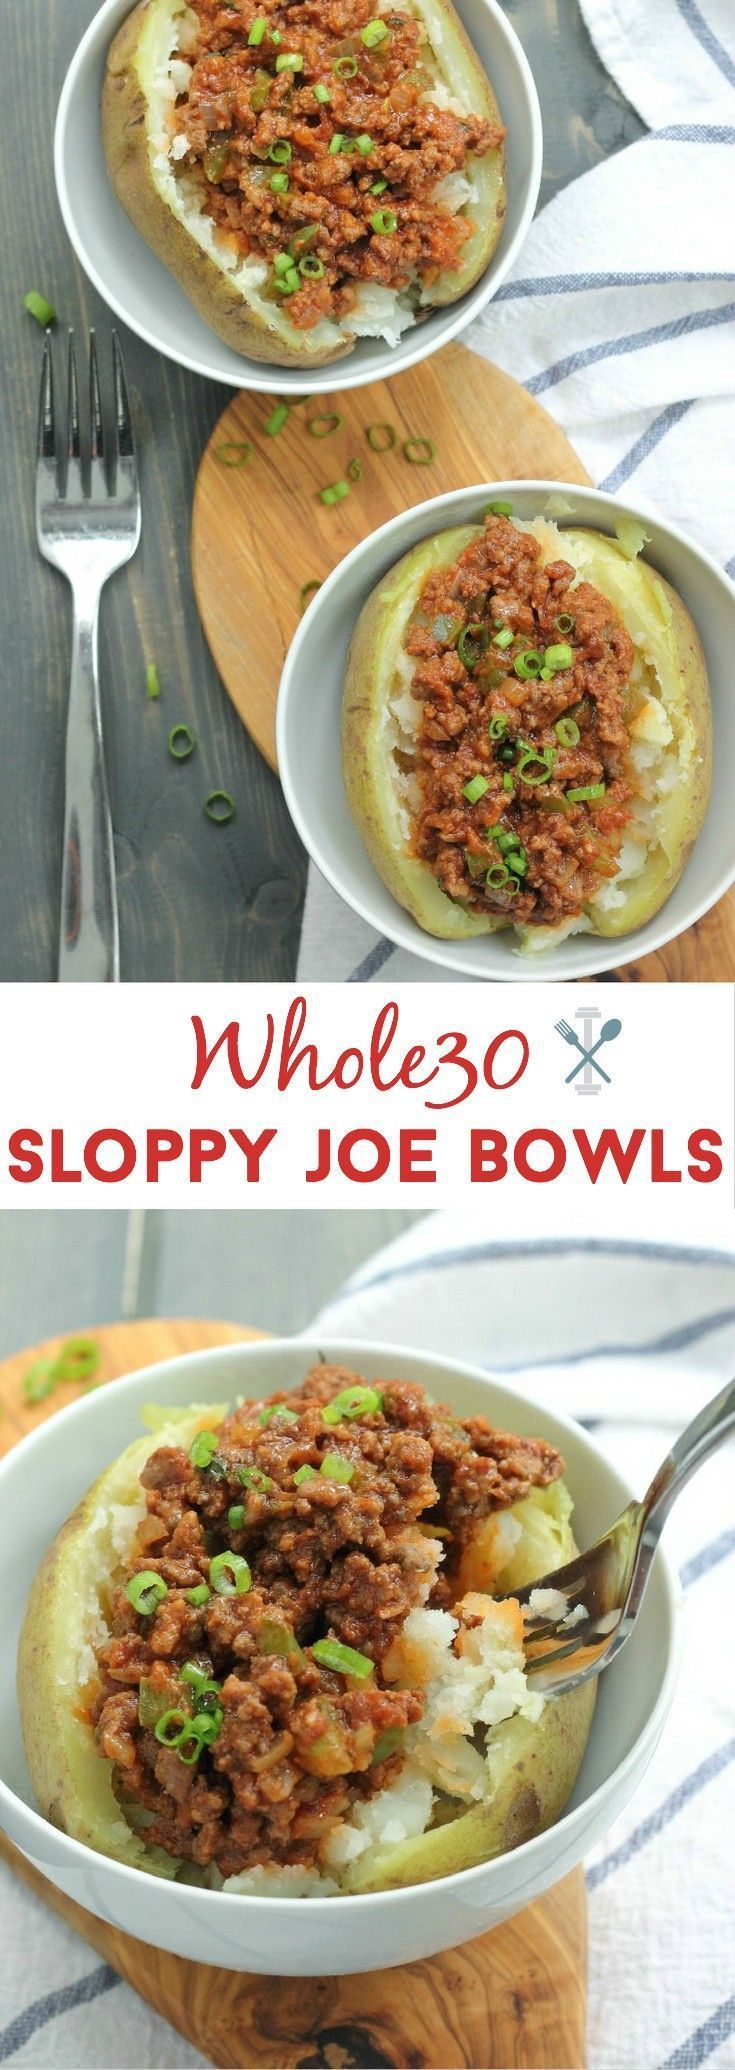 Sloppy Joe Bowls One of the best Whole30 recipes I've ever made. A childhood favorite in a healthier, whole30 compliant version. You'll never go back to your old sloppy joe recipe ever again!One of the best Whole30 recipes I've ever made. A childhood favorite in a healthier, whole30 compliant version. You'll never go back to your old sloppy joe recipe ever again!